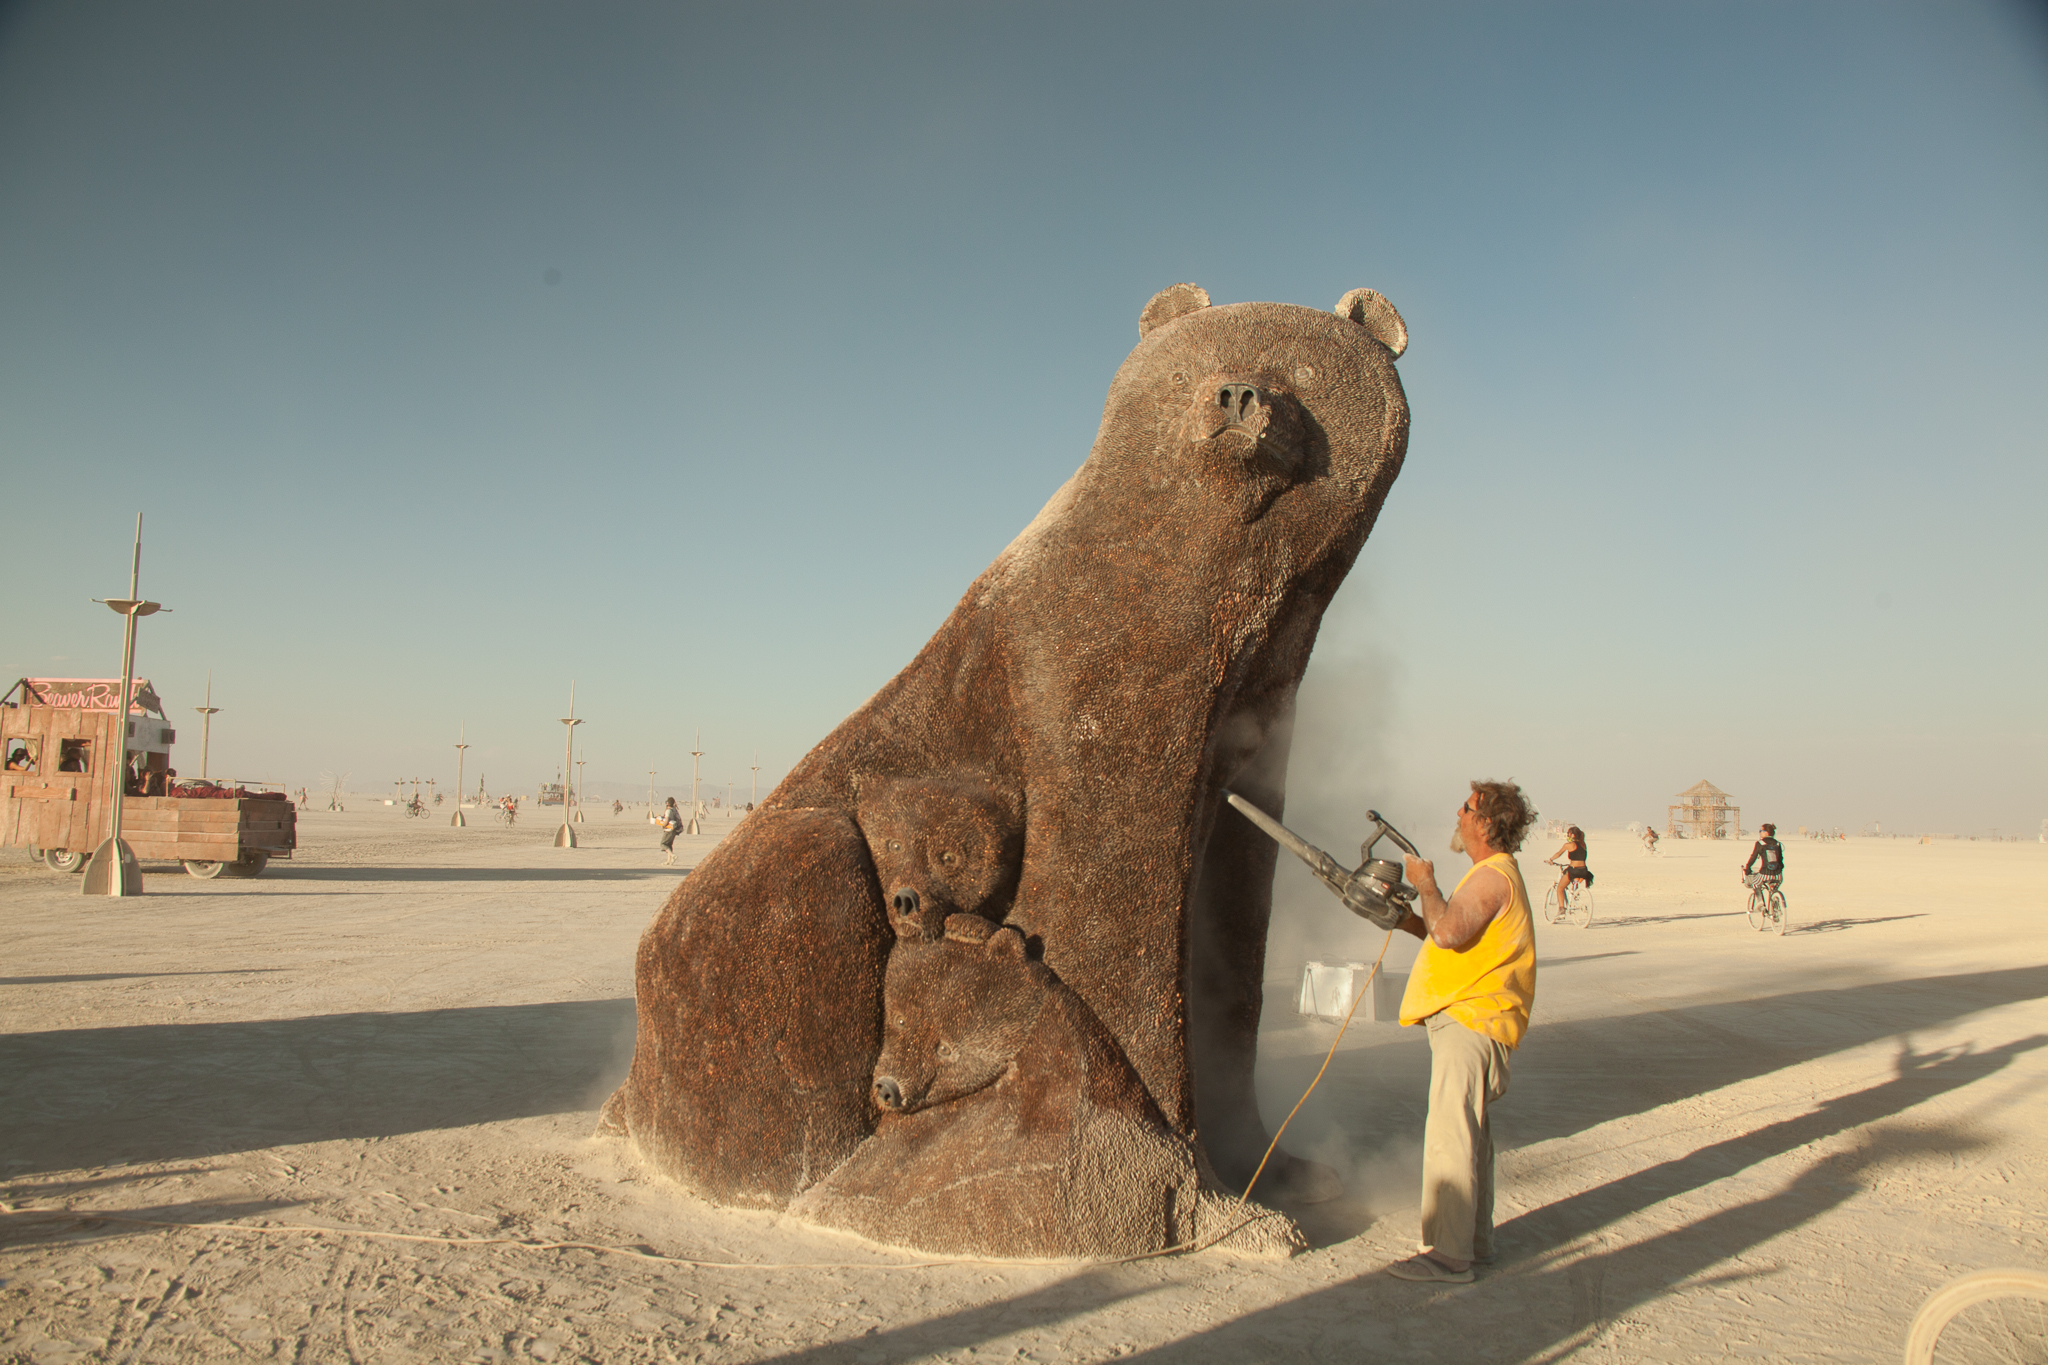 Daily Maintenance at Burning Man